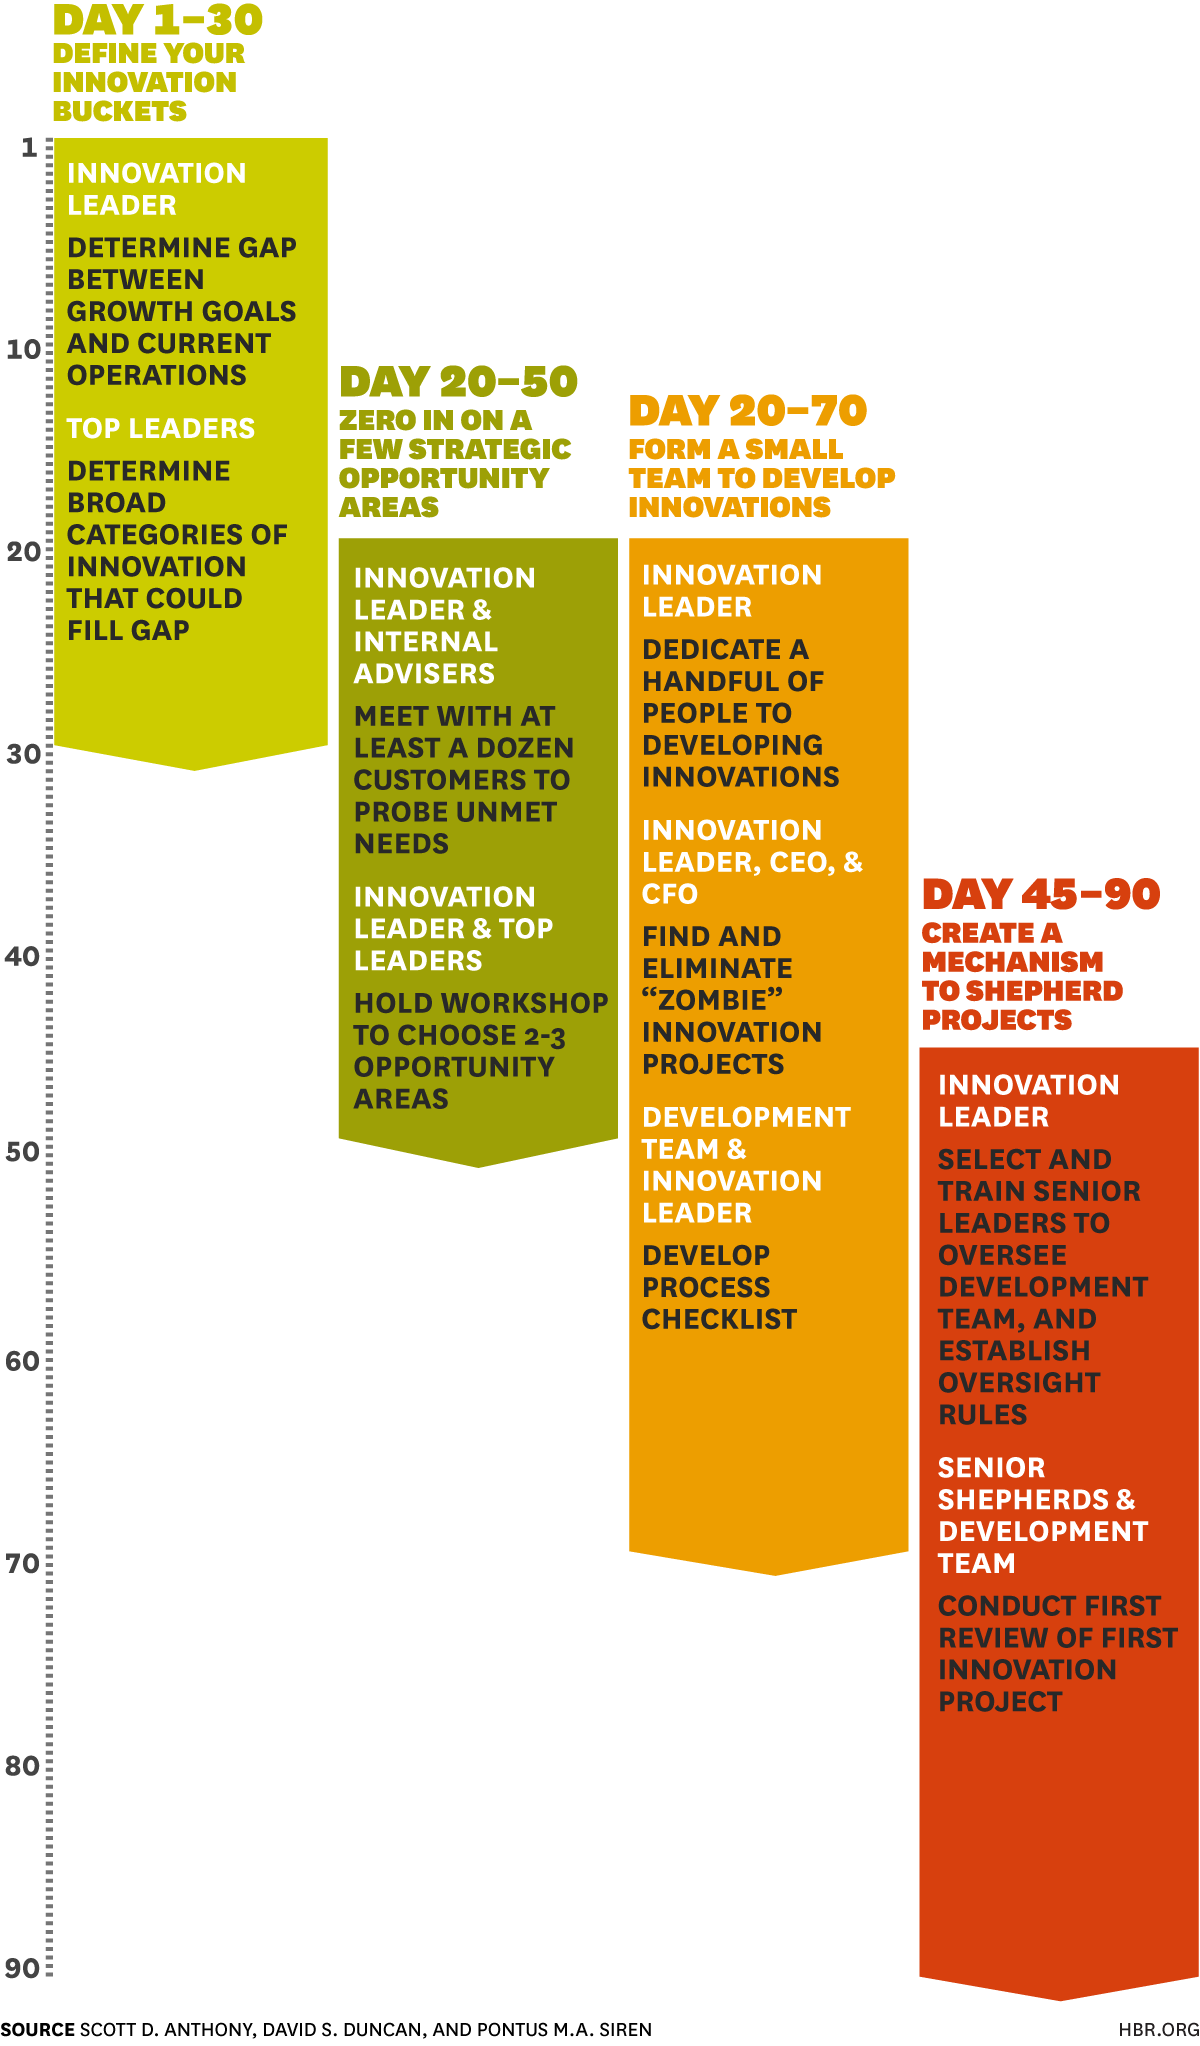 Build An Innovation Engine In  Days  Harvard Business Review